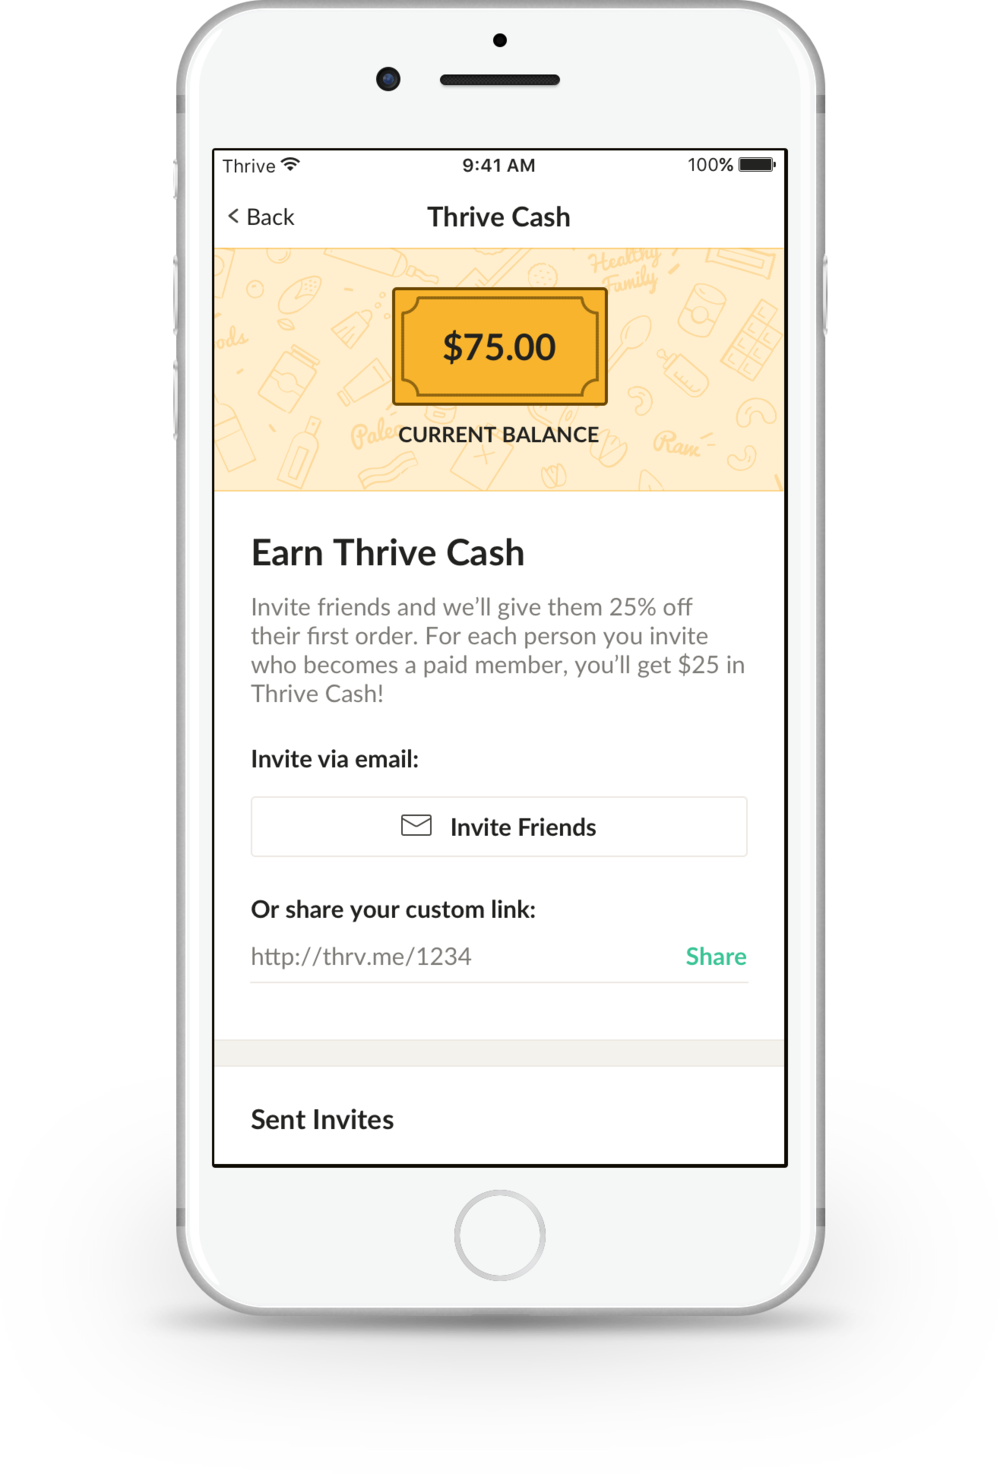 Thrive Cash